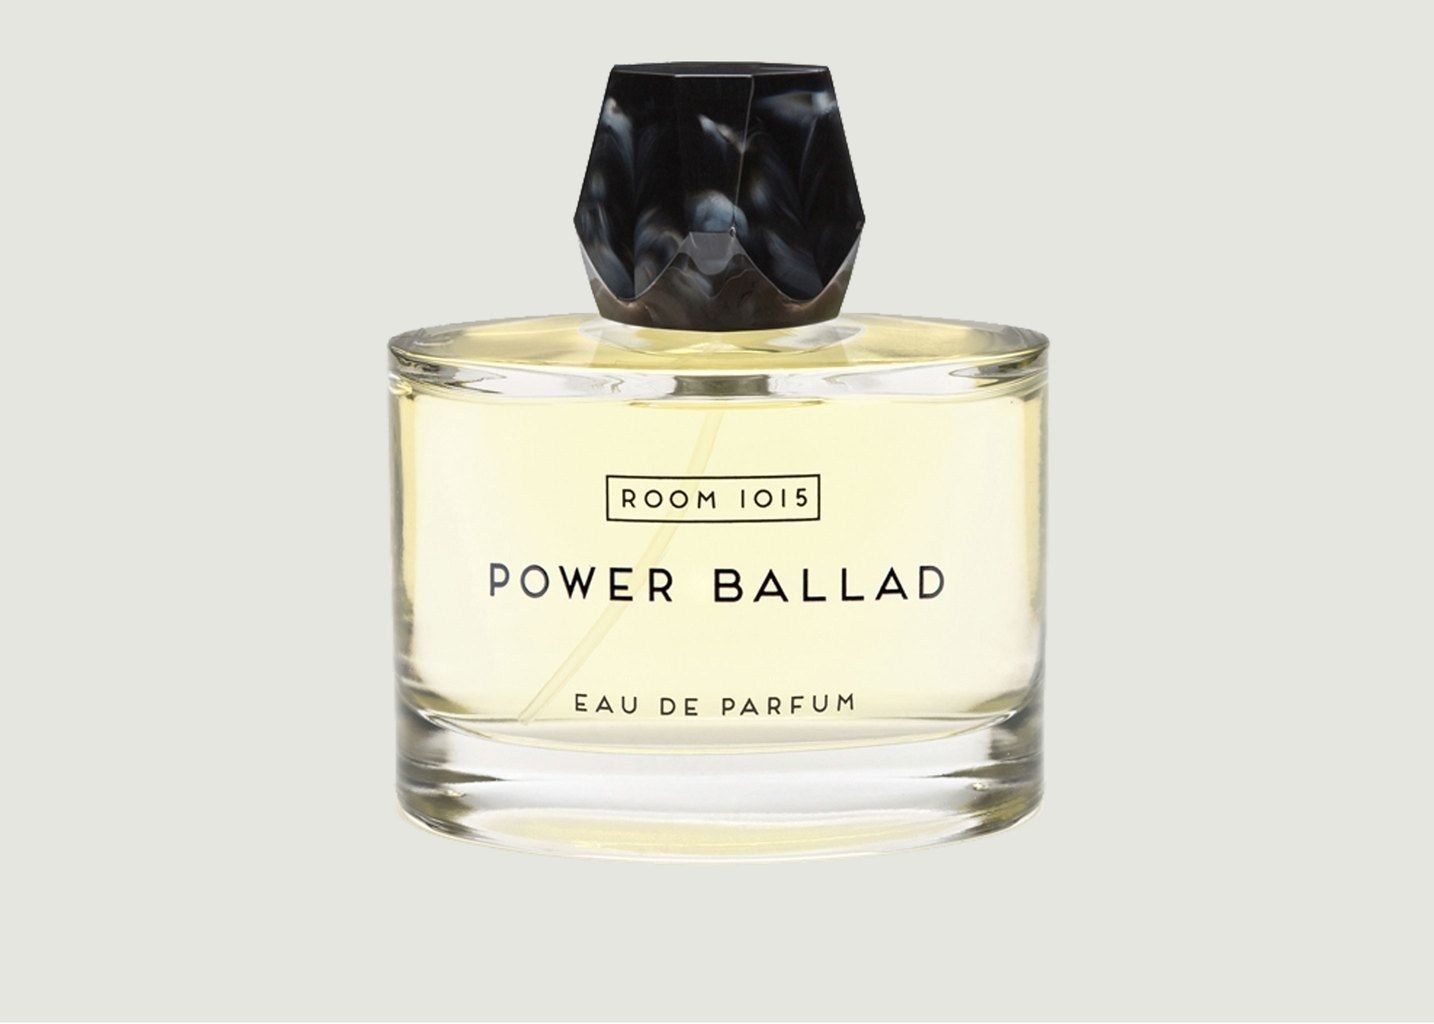 Parfum Power Ballad - Room 1015